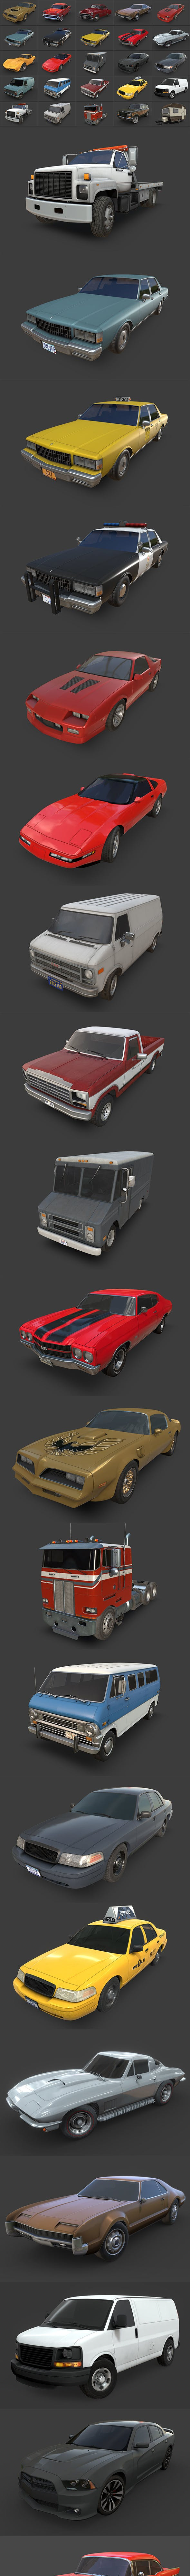 American Cars Ultimate Collection - 3DOcean Item for Sale